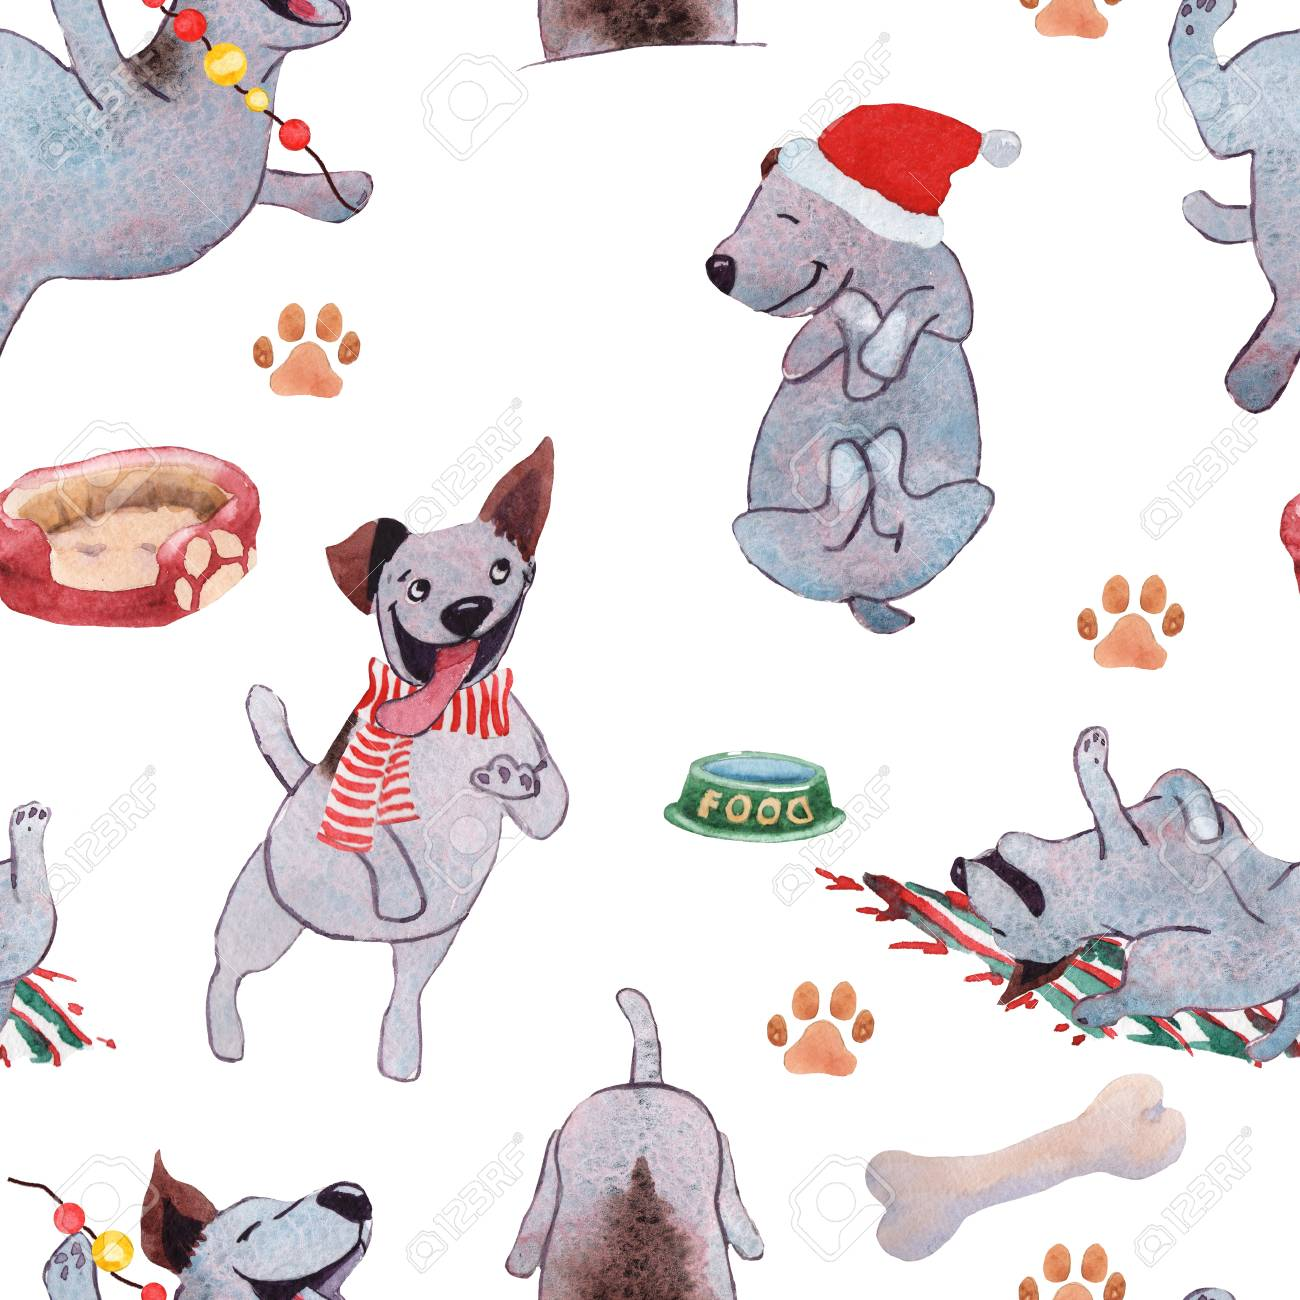 Christmas Puppy Dog Playing With Ball Hand Drawing Watercolor Stock Photo Picture And Royalty Free Image Image 91658705